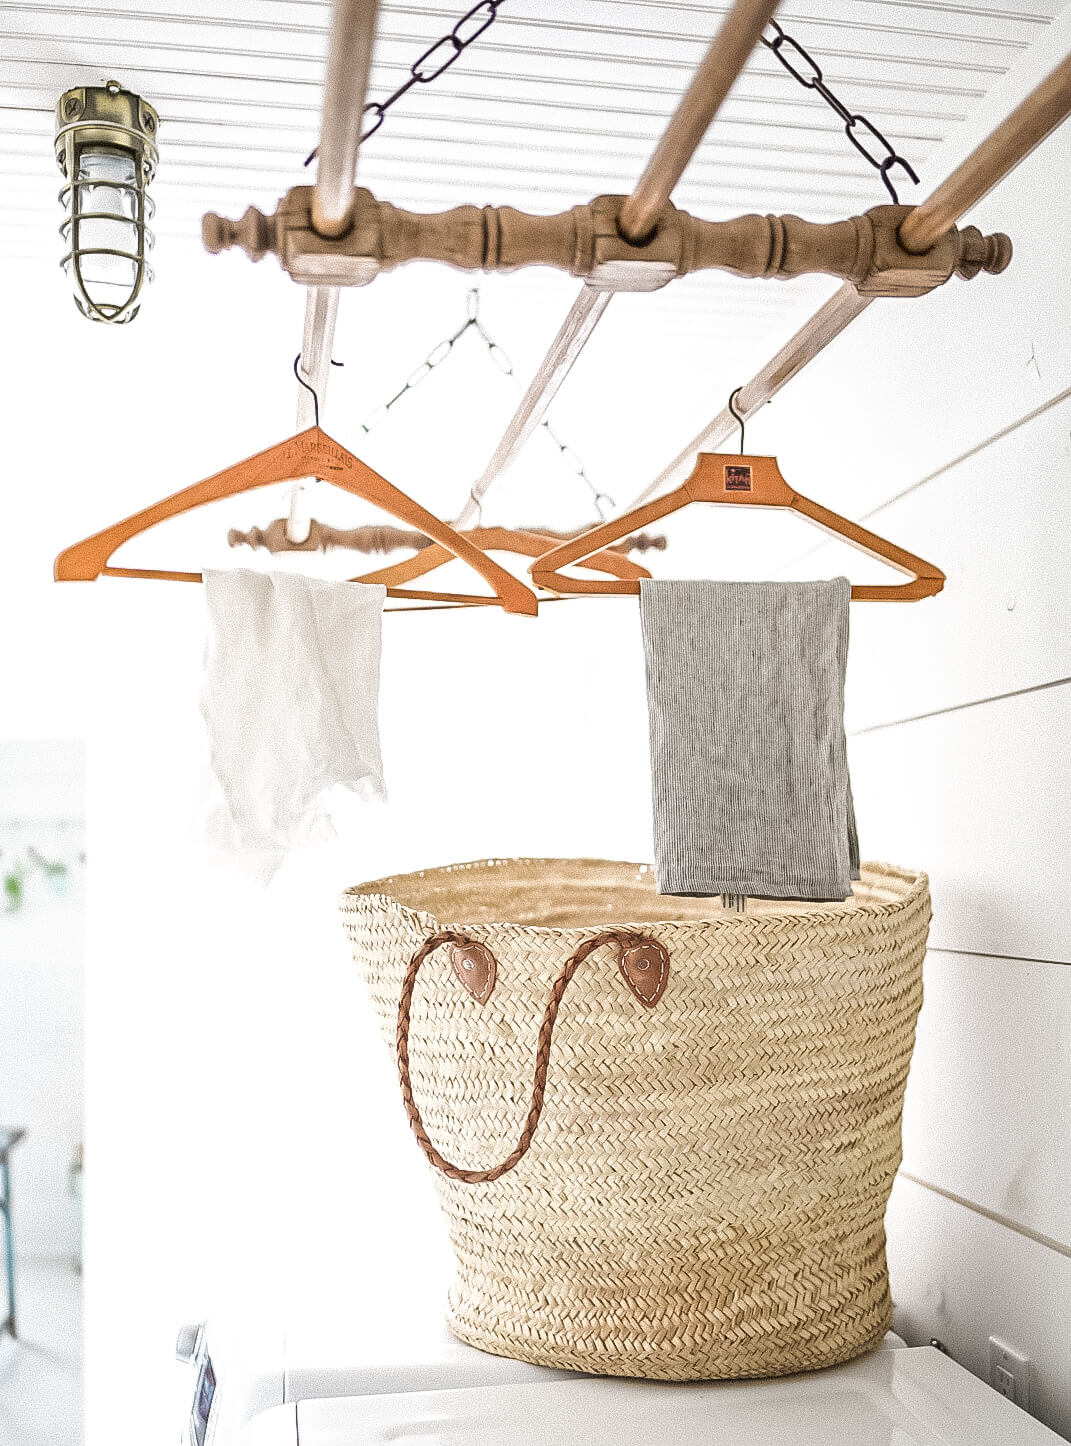 Drying rack and laundry basket